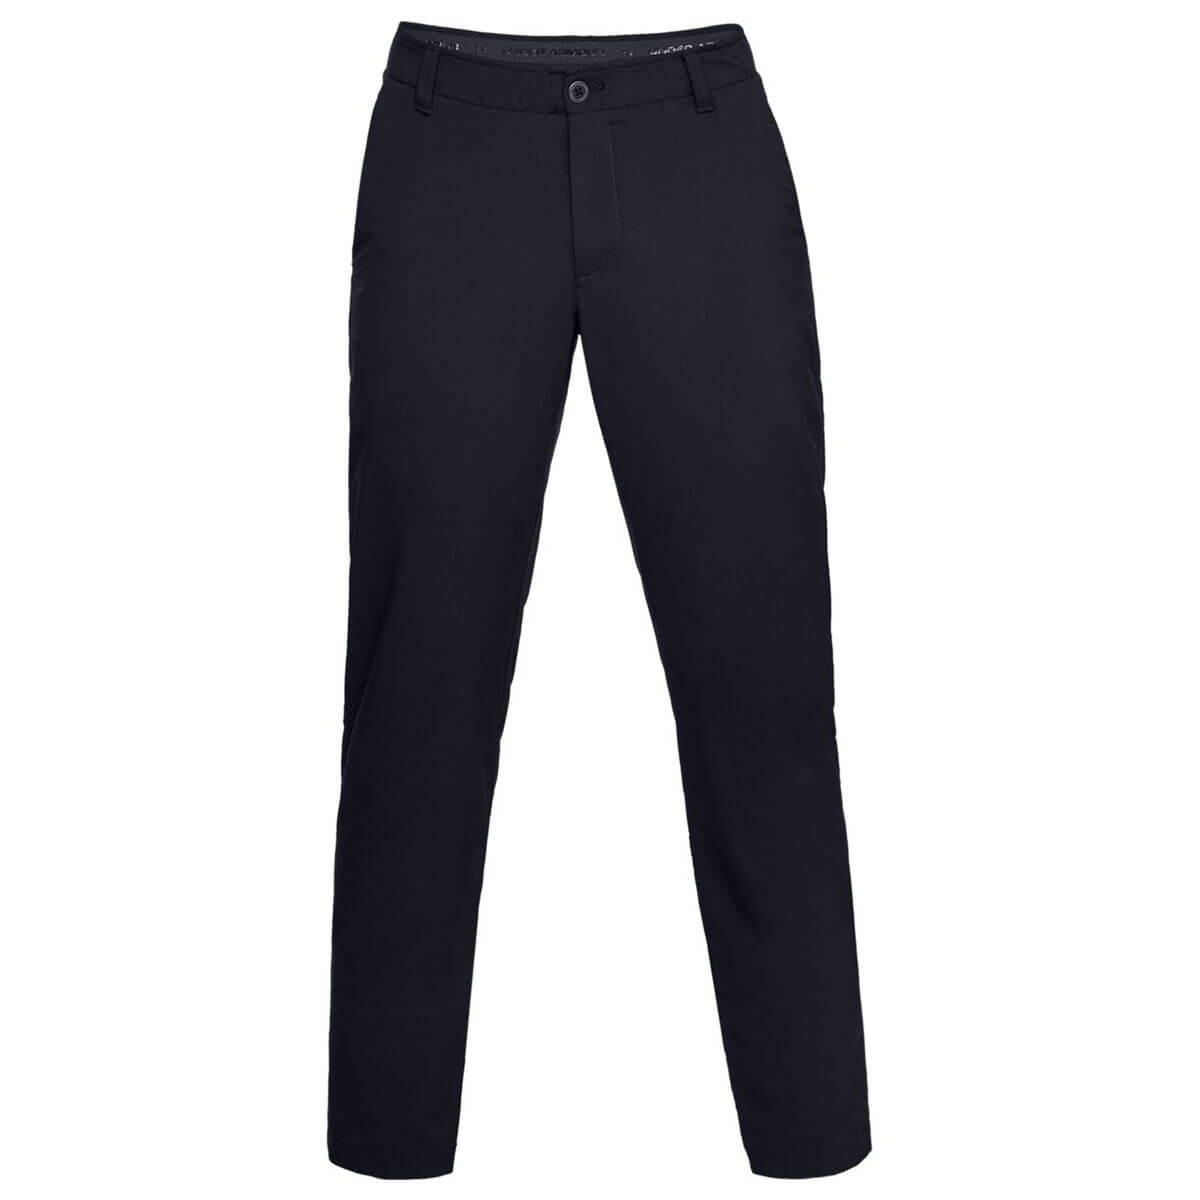 Under-Armour-Mens-2019-EU-Performance-Slim-Taper-Soft-Stretch-Golf-Trousers thumbnail 8